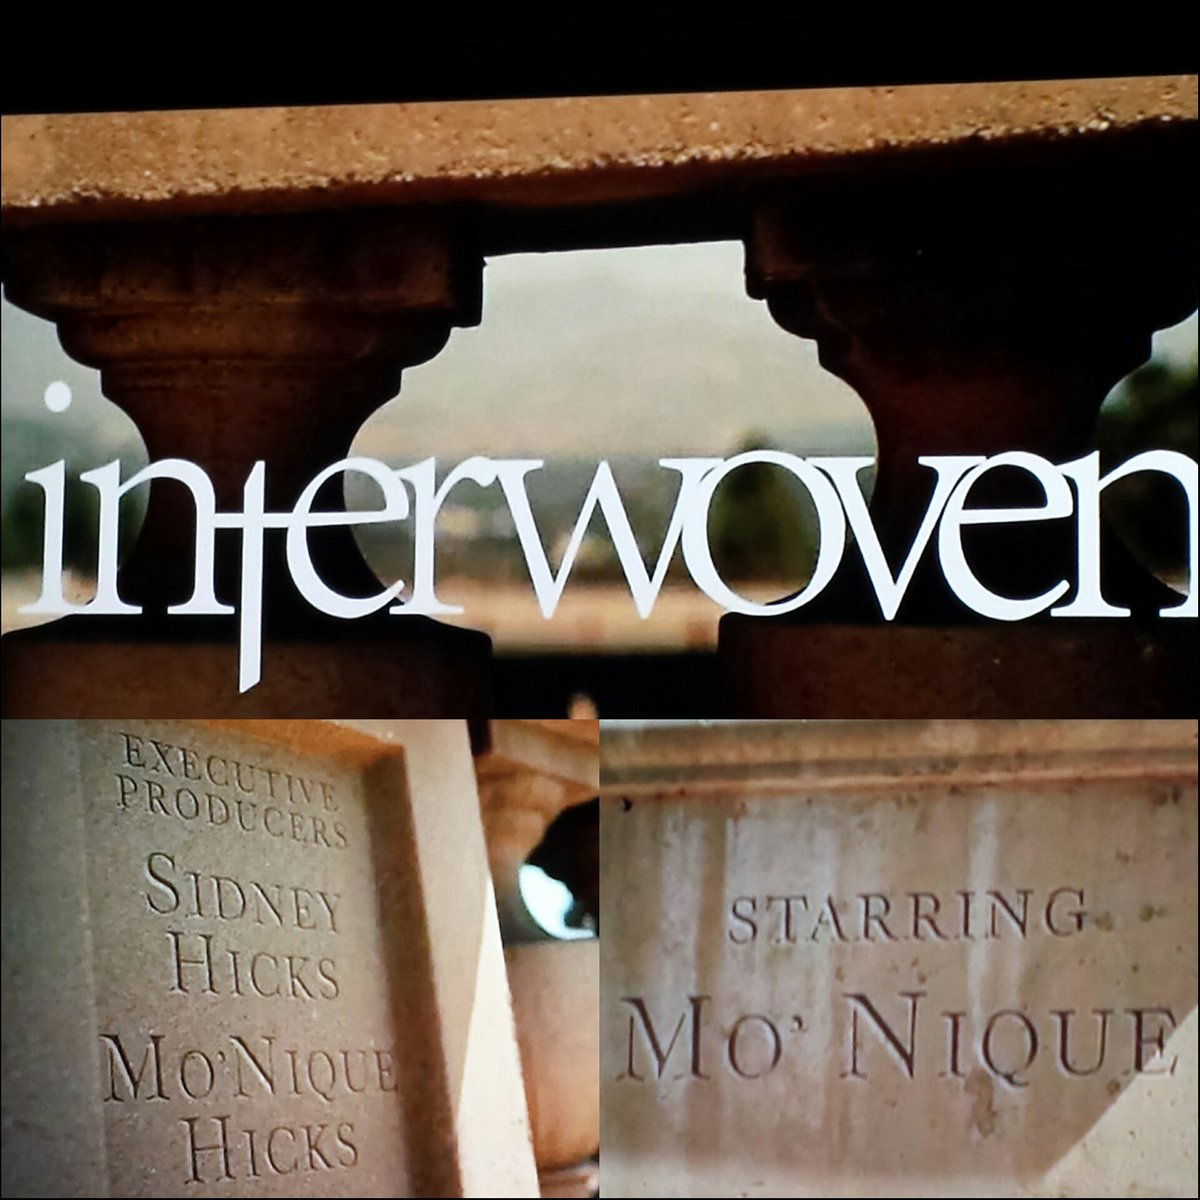 "@moworldwide ""Interwoven,"" really blessed me! Thanks for this film! It will help all going thru! #interwoven #movie https://t.co/2zE7RllR5Q"